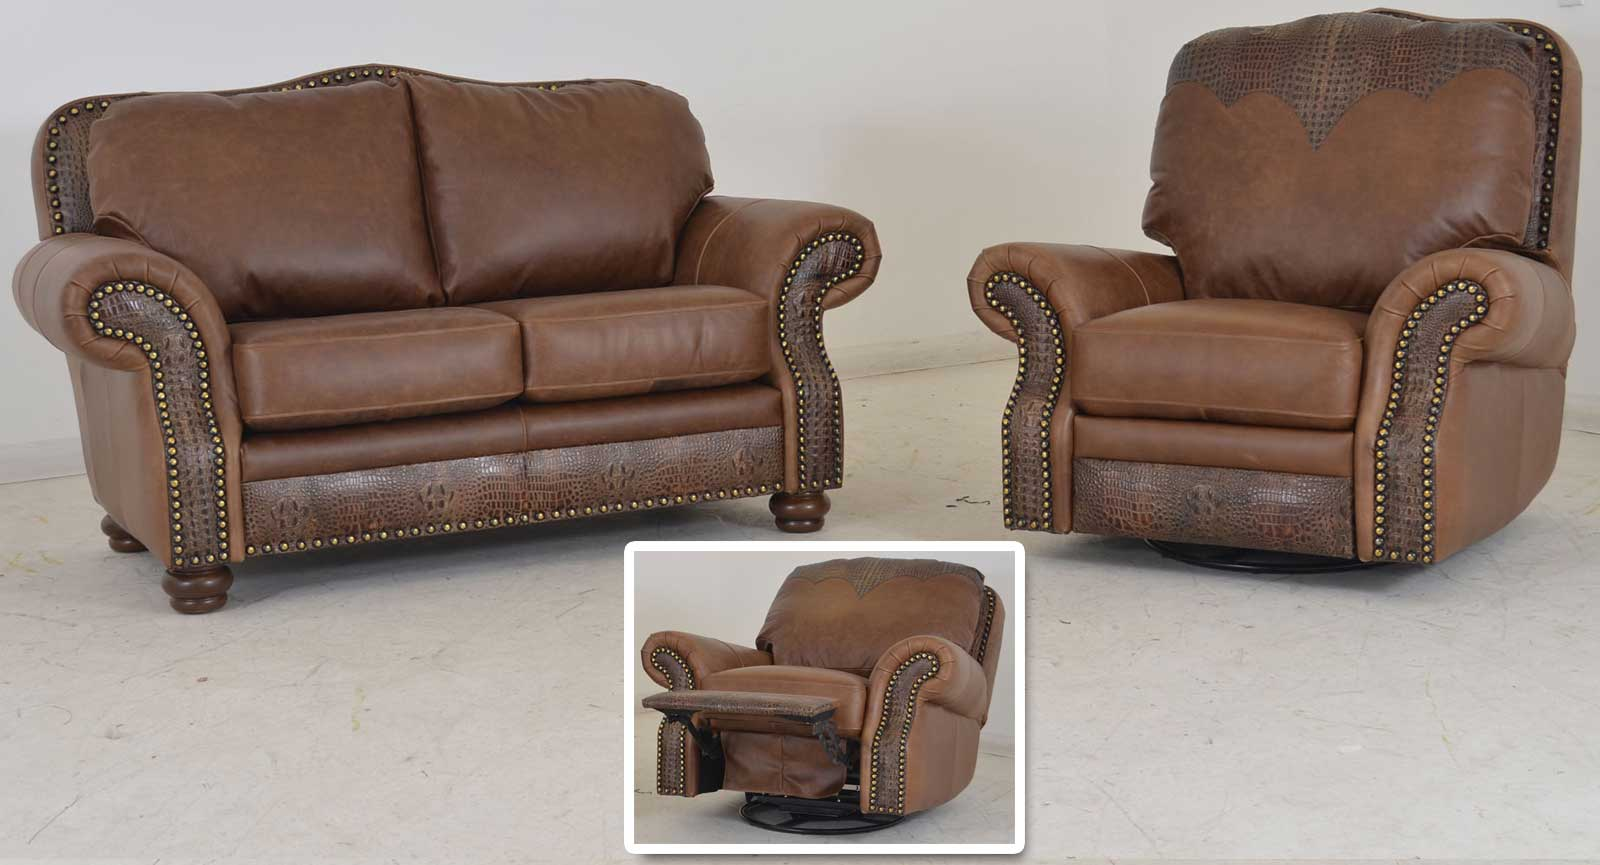 Loveseat Swivel Glider Recliner